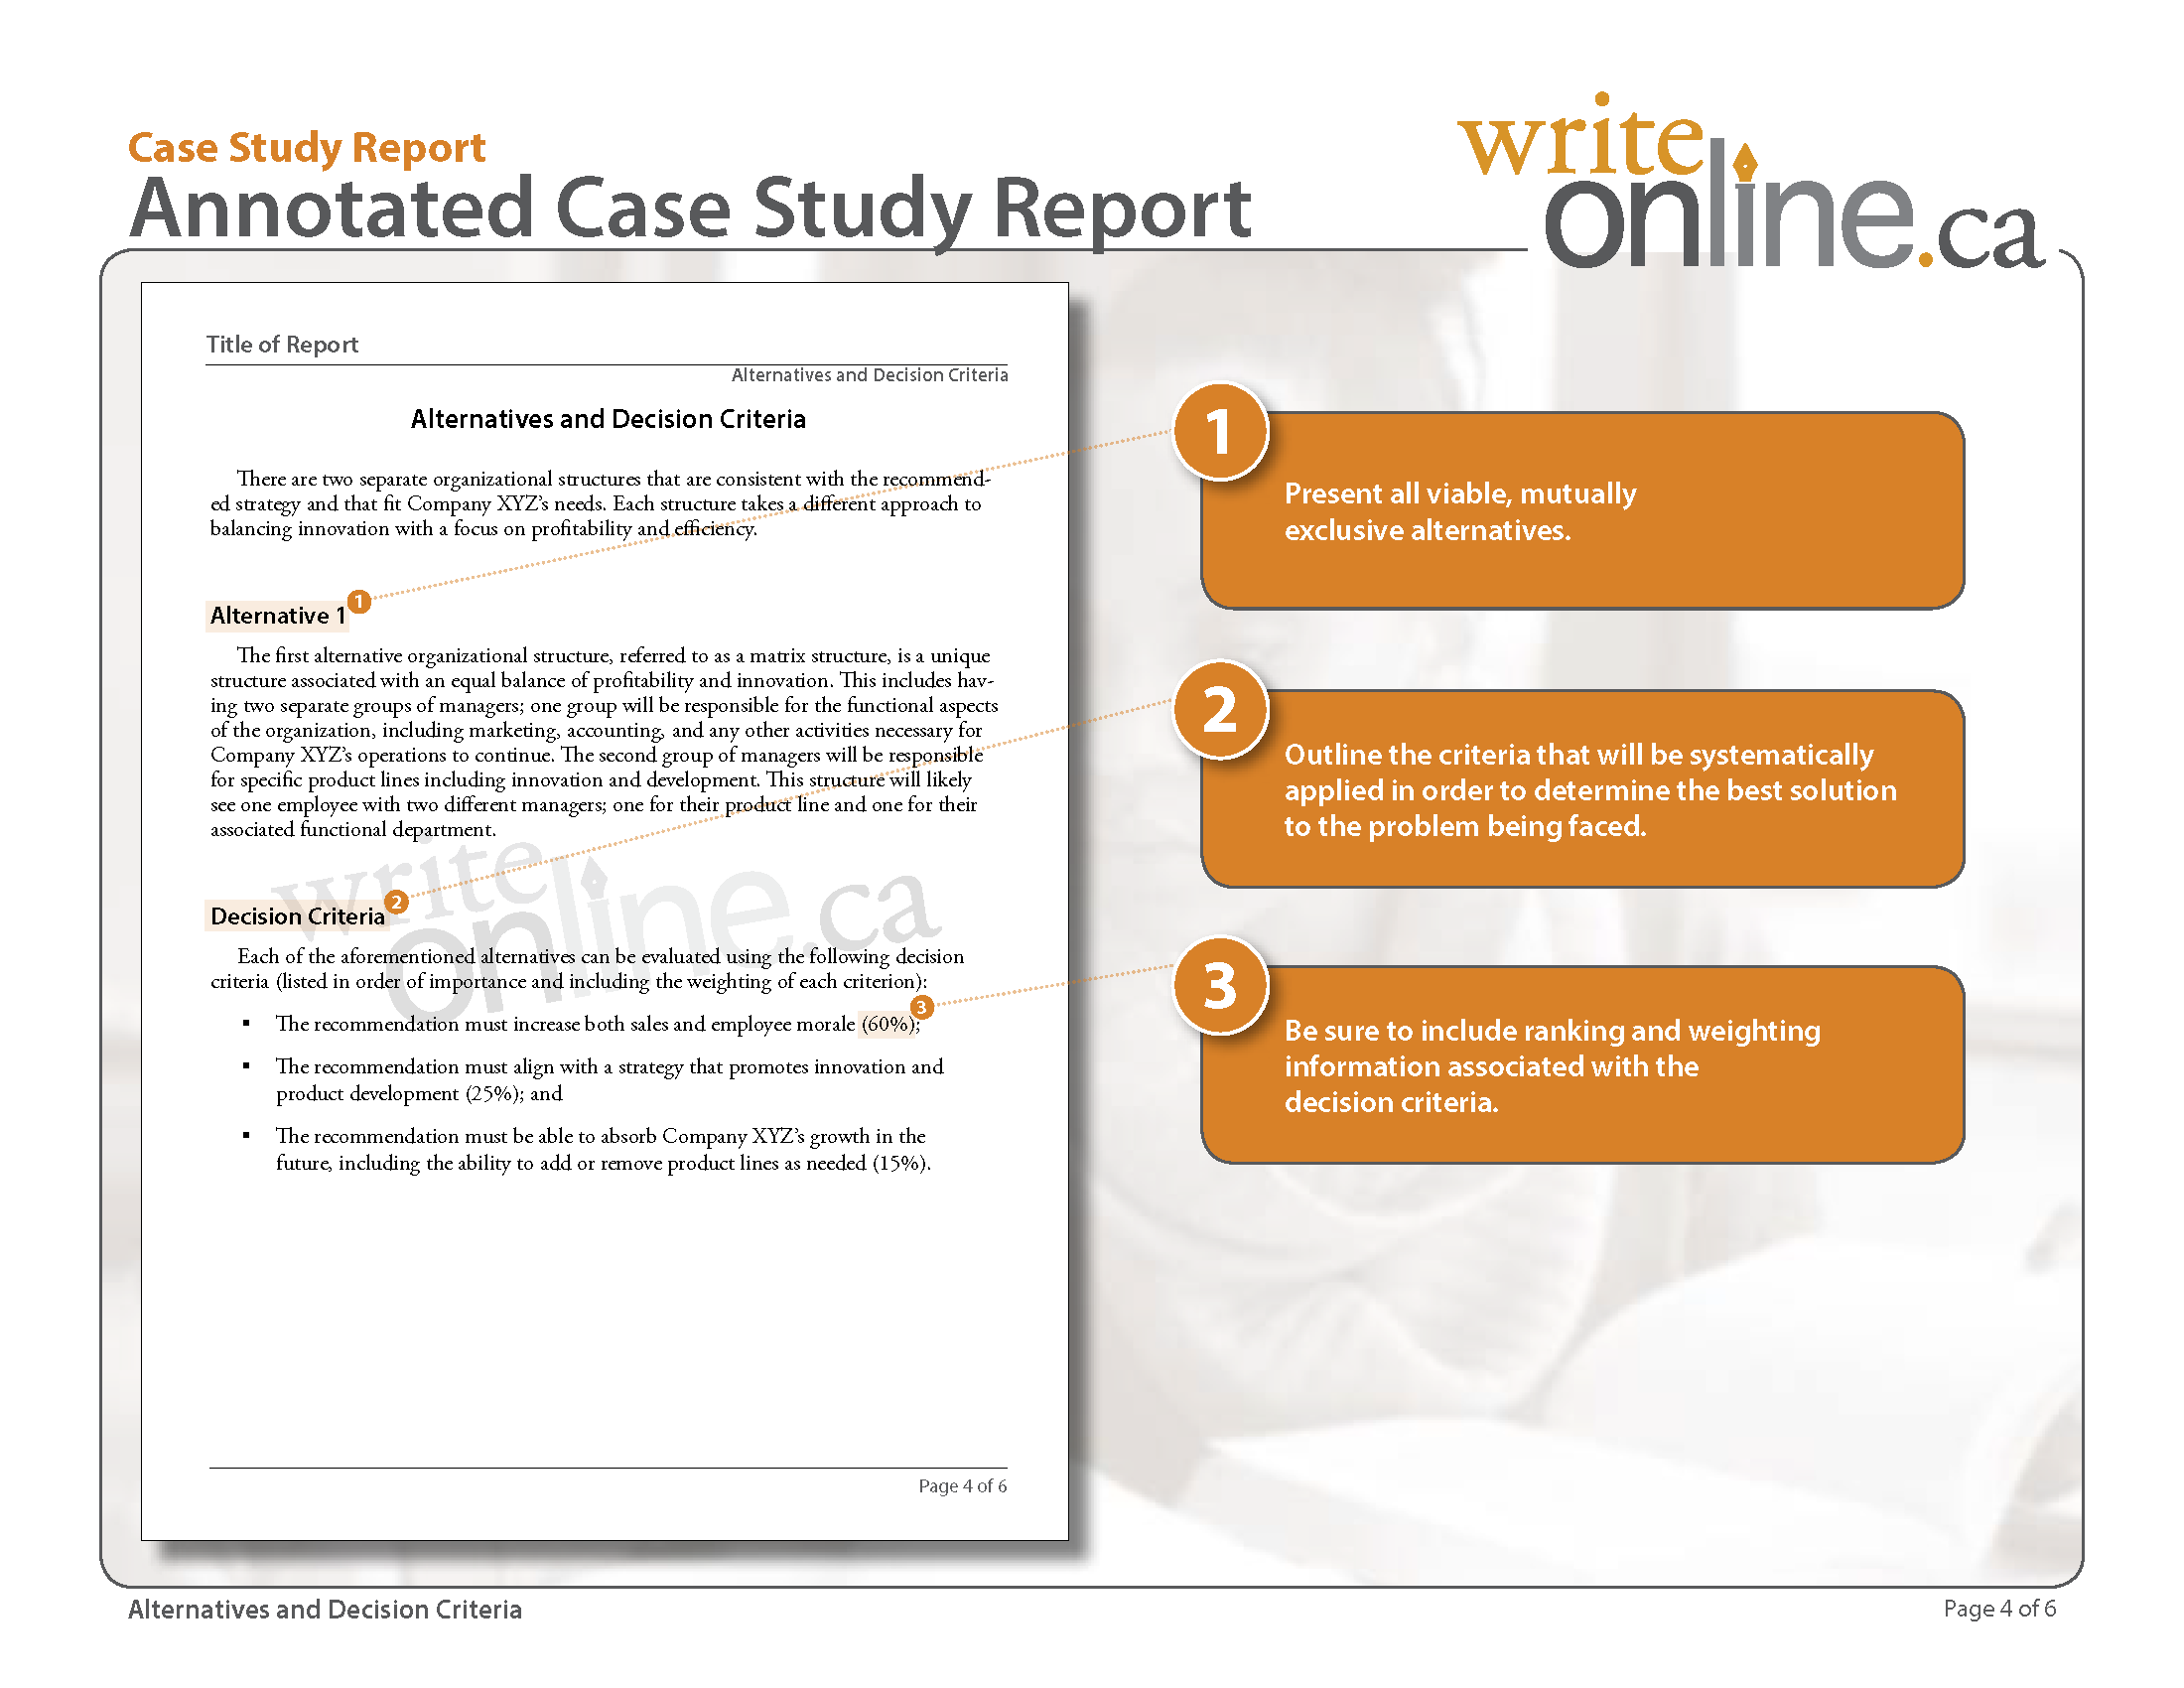 012 Components Of Research Paper Outline Casestudy Annotatedfull Page 4 Imposing Main A Full